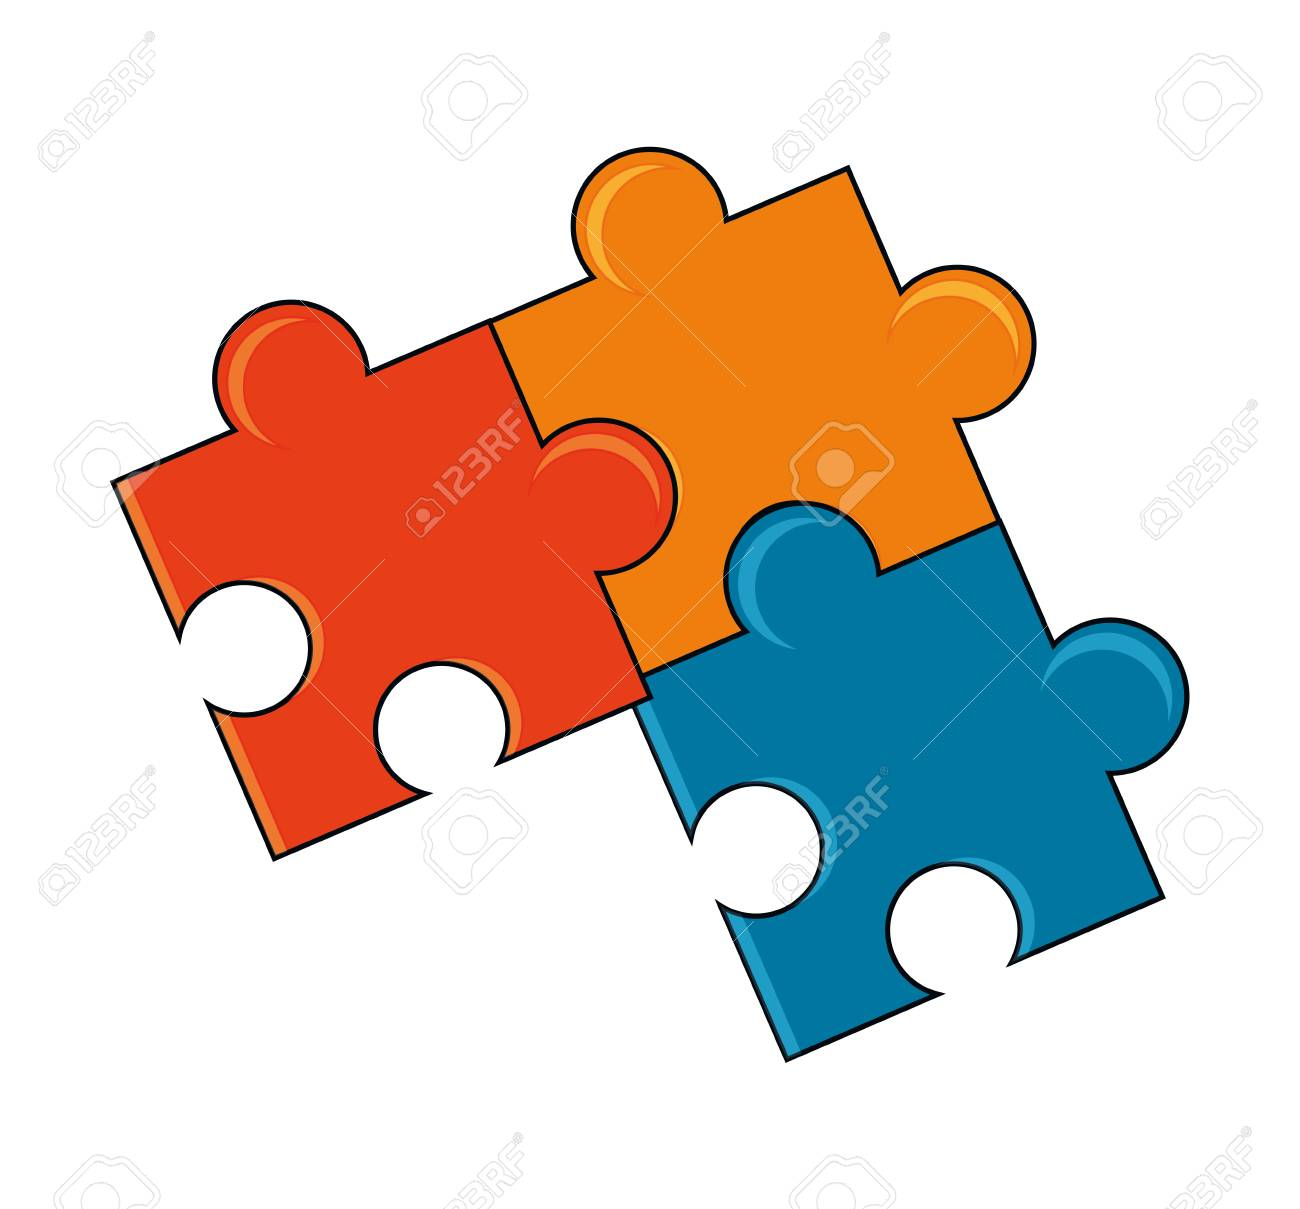 Puzzle Icon Piece Part Jigsaw Abstract Idea And Object Theme Colorful Isolated Design